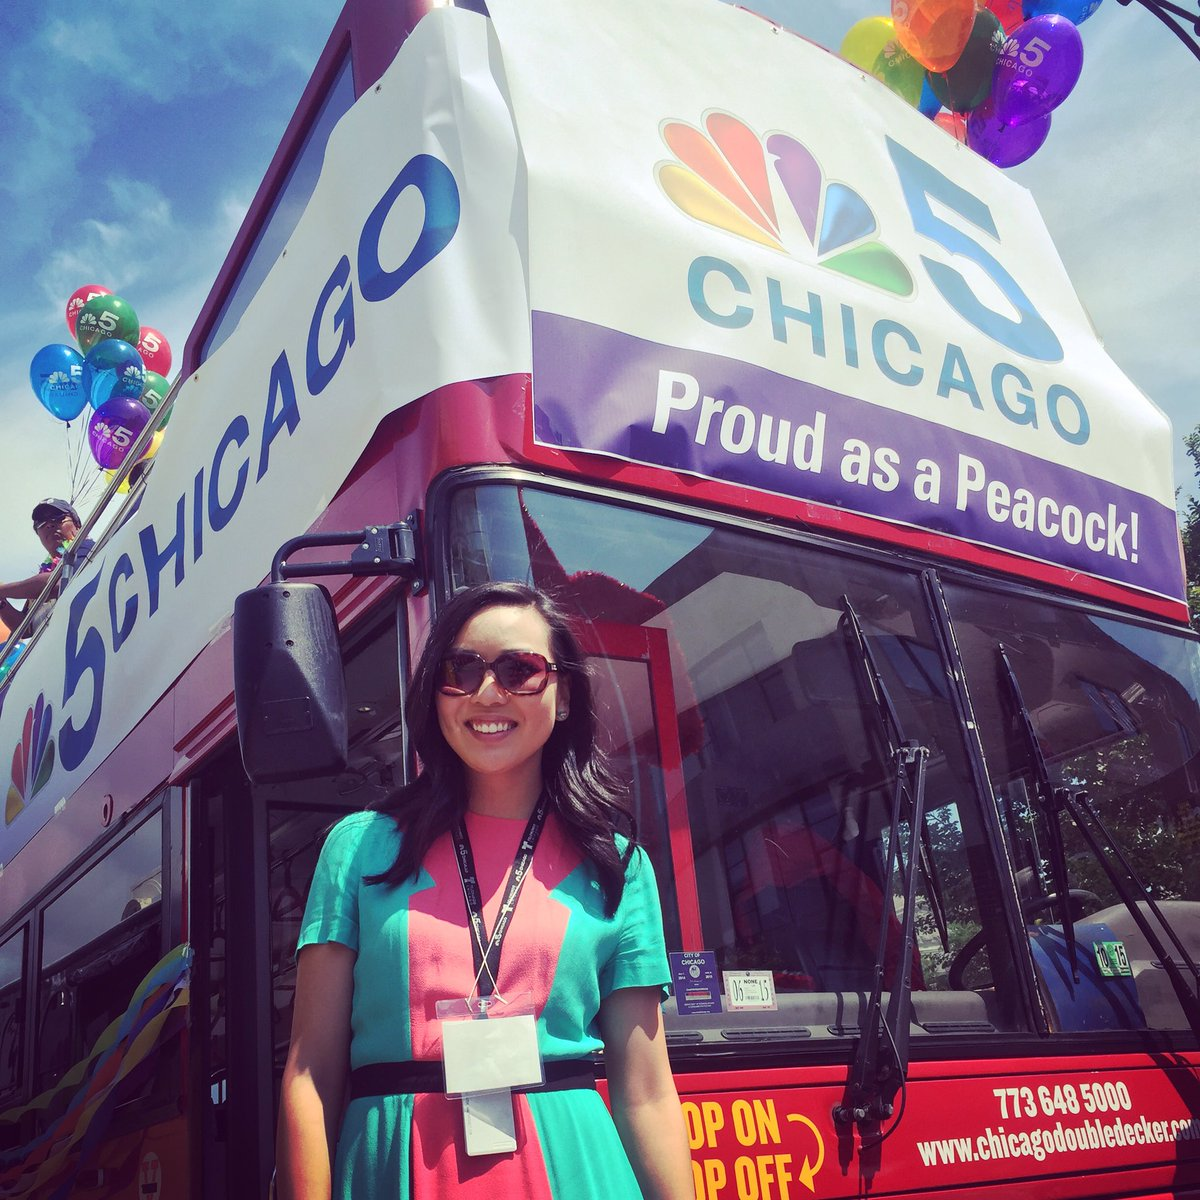 Happy #Pride, #Chicago! Here&#39;s a throwback to our parade a few years ago. Have so much fun today! parade kicks off in 30 min! <br>http://pic.twitter.com/1V52qLx278